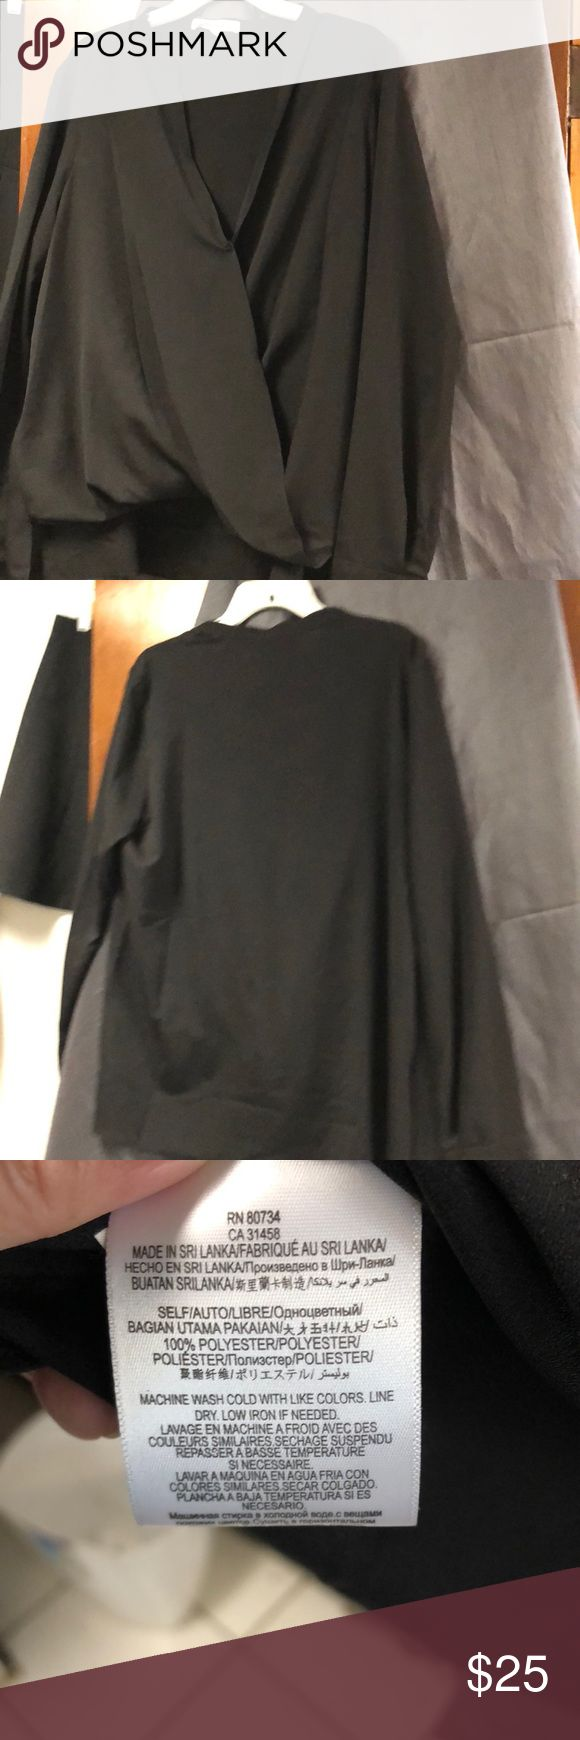 New with Tags- Bcbgeneration Top New without Tags- Bcbgeneration Top BCBGeneration Tops